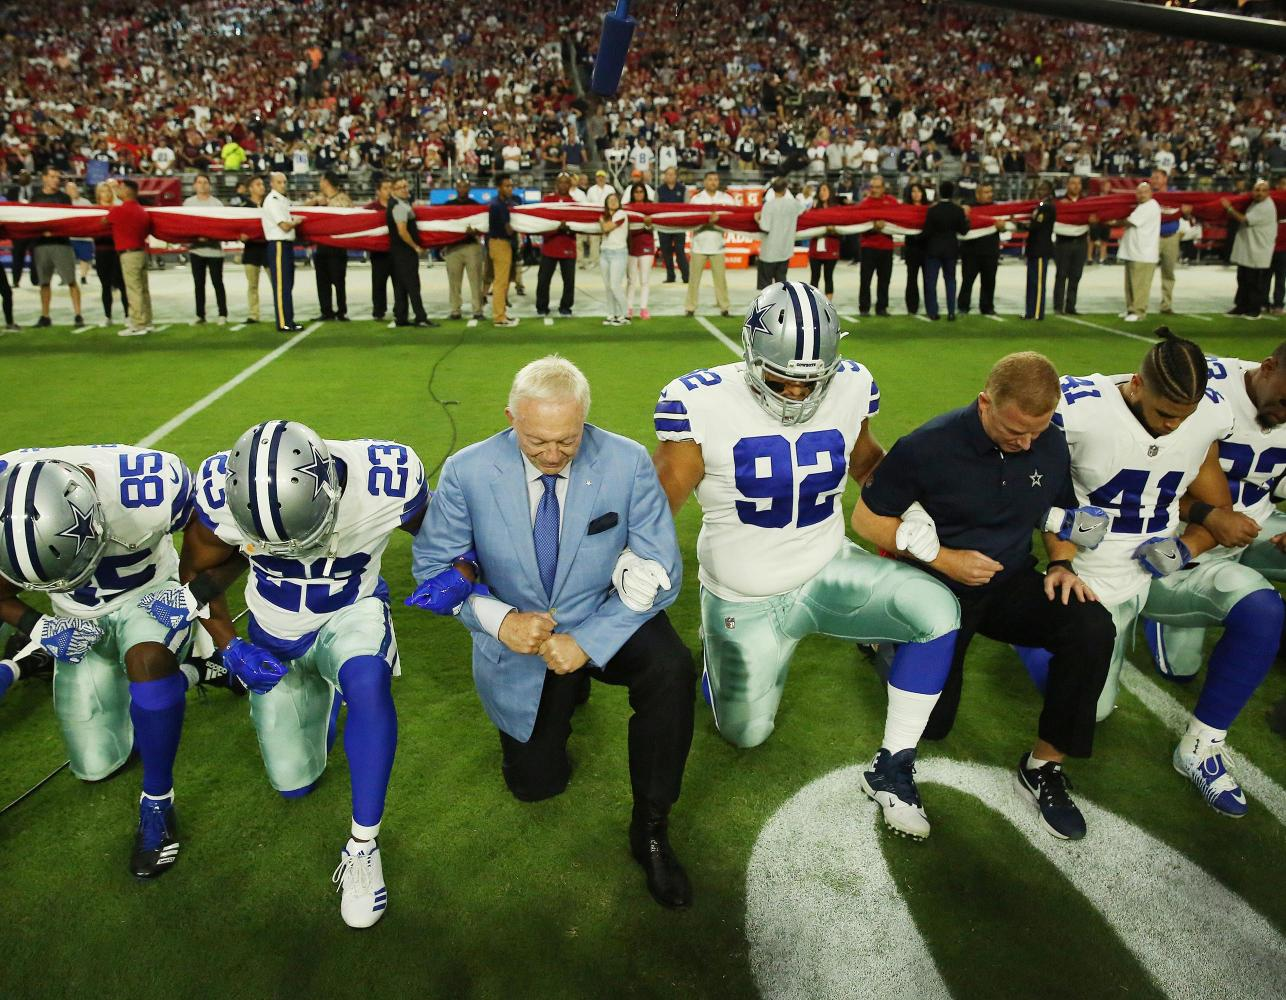 The Dallas Cowboy's took a knee during the national anthem before their game against the Arizona Cardinals.